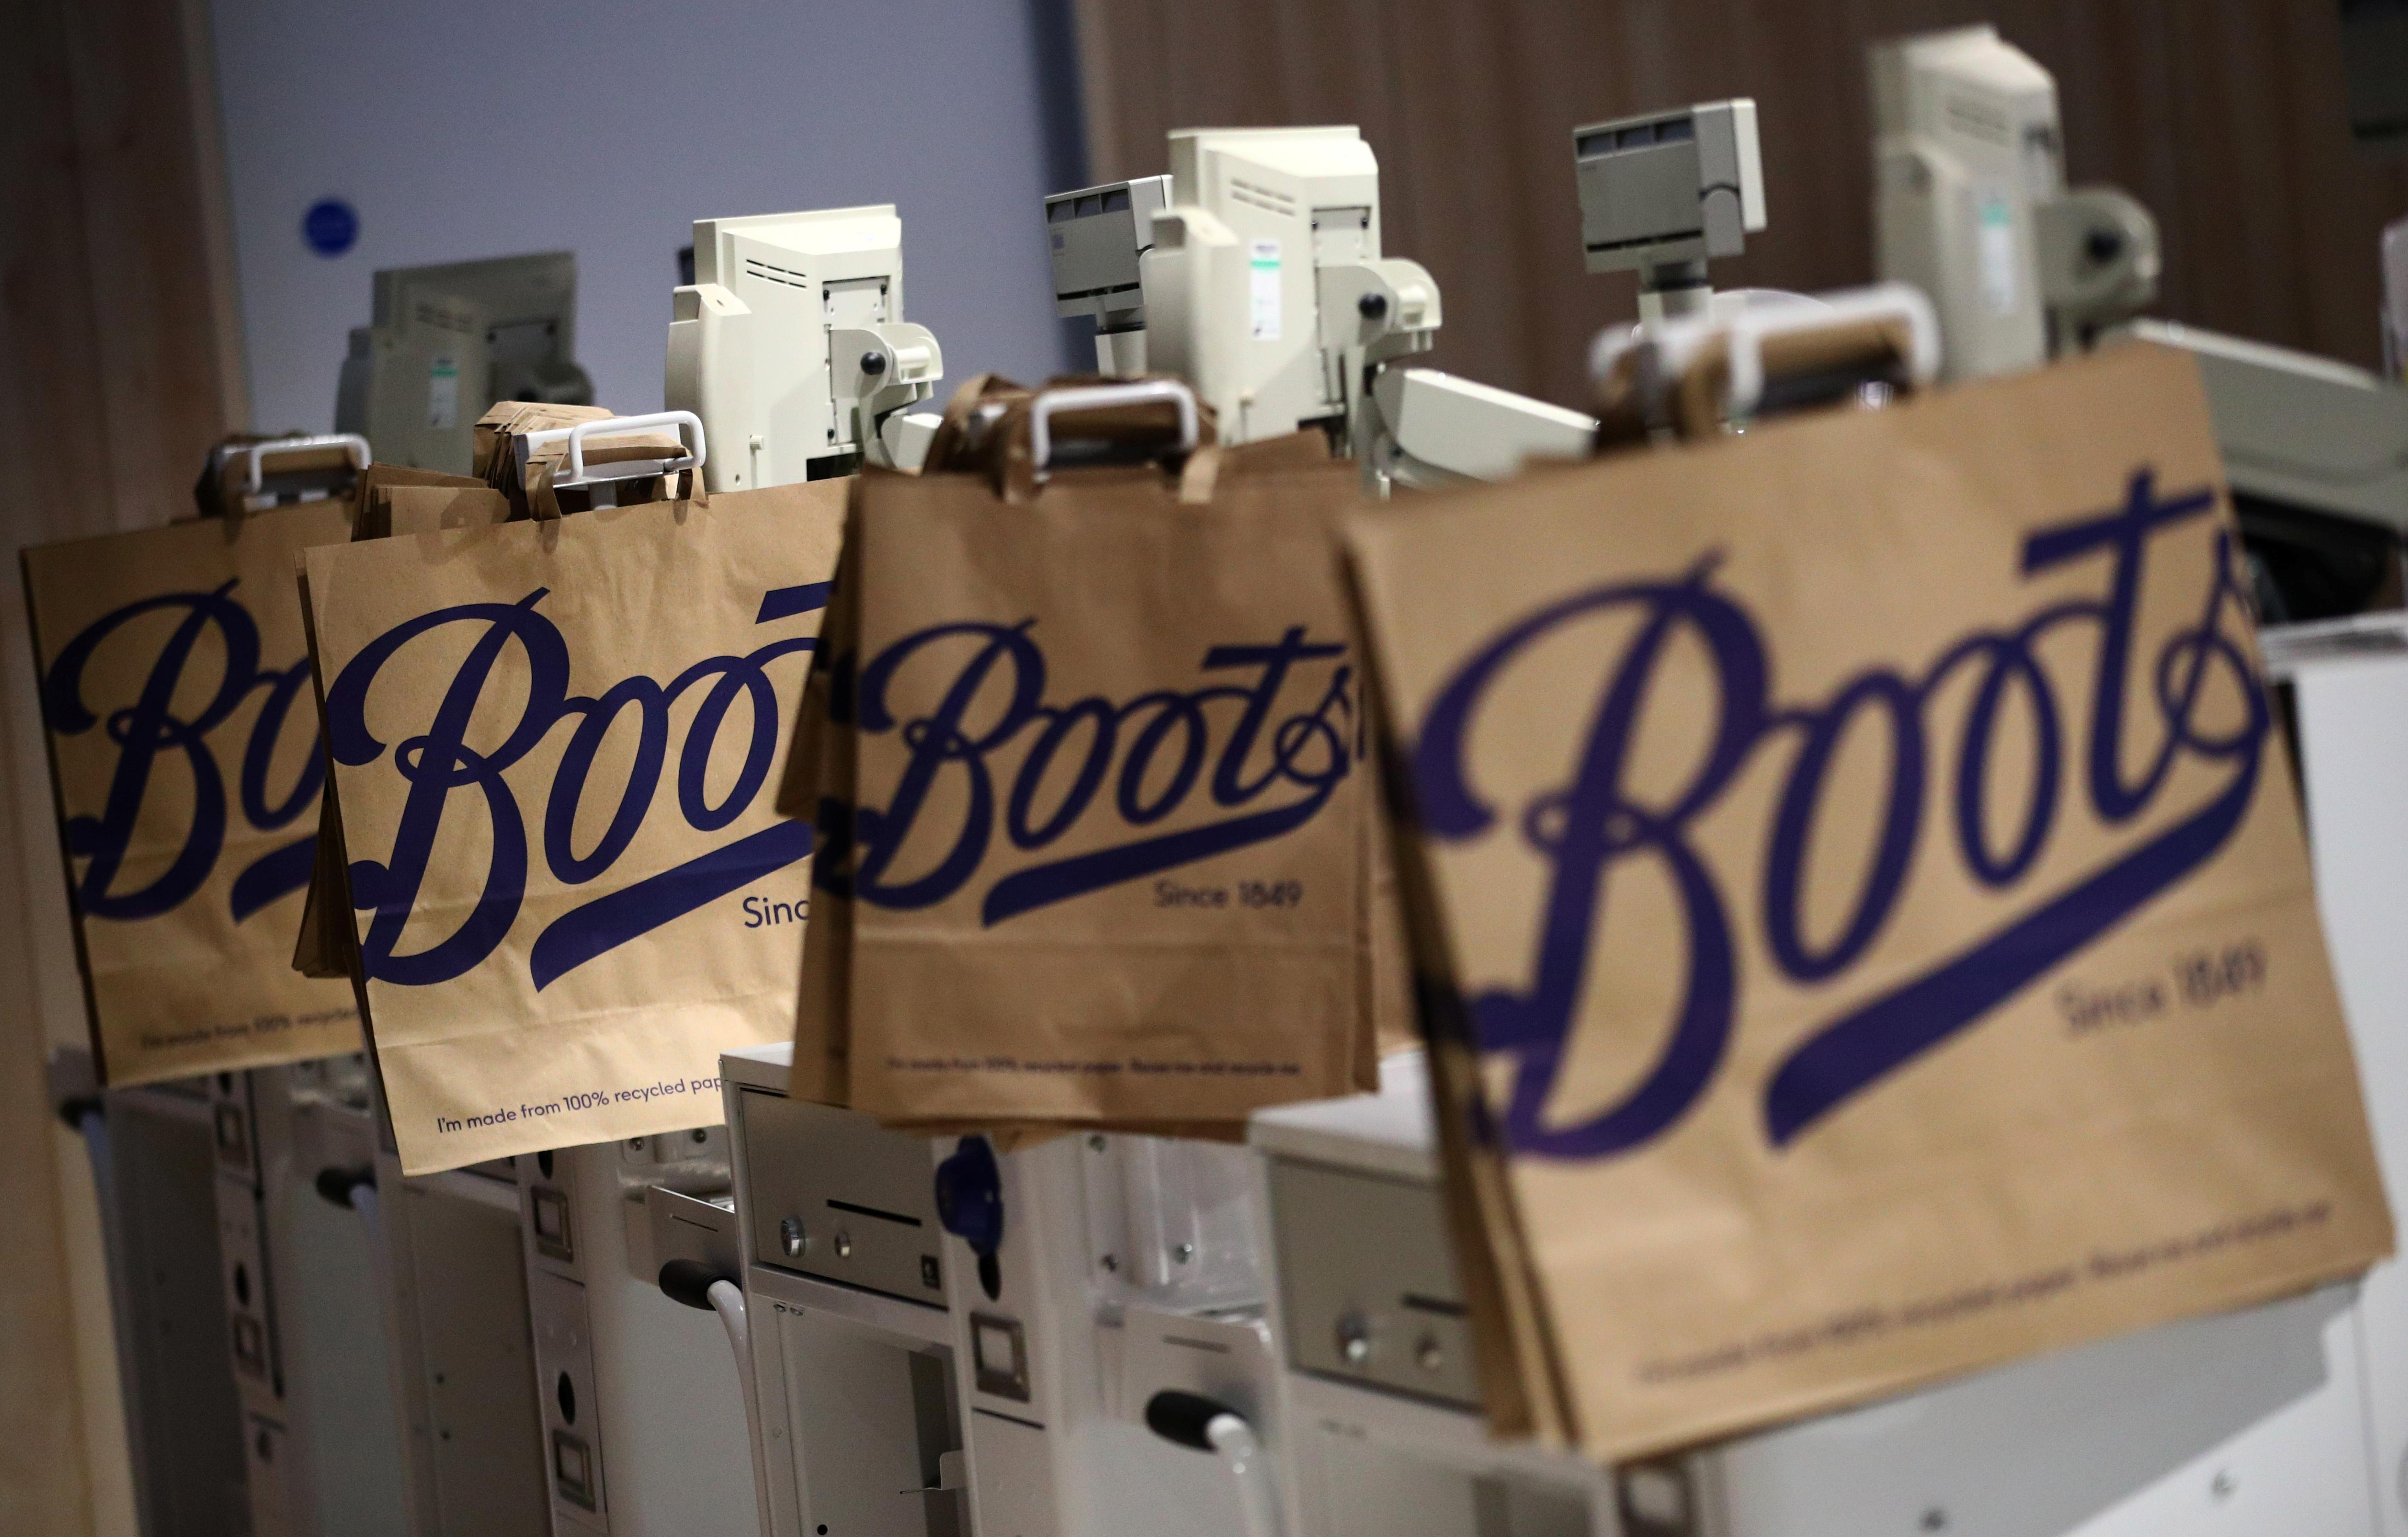 Storm clouds gathering over UK economy, warns retailer Boots